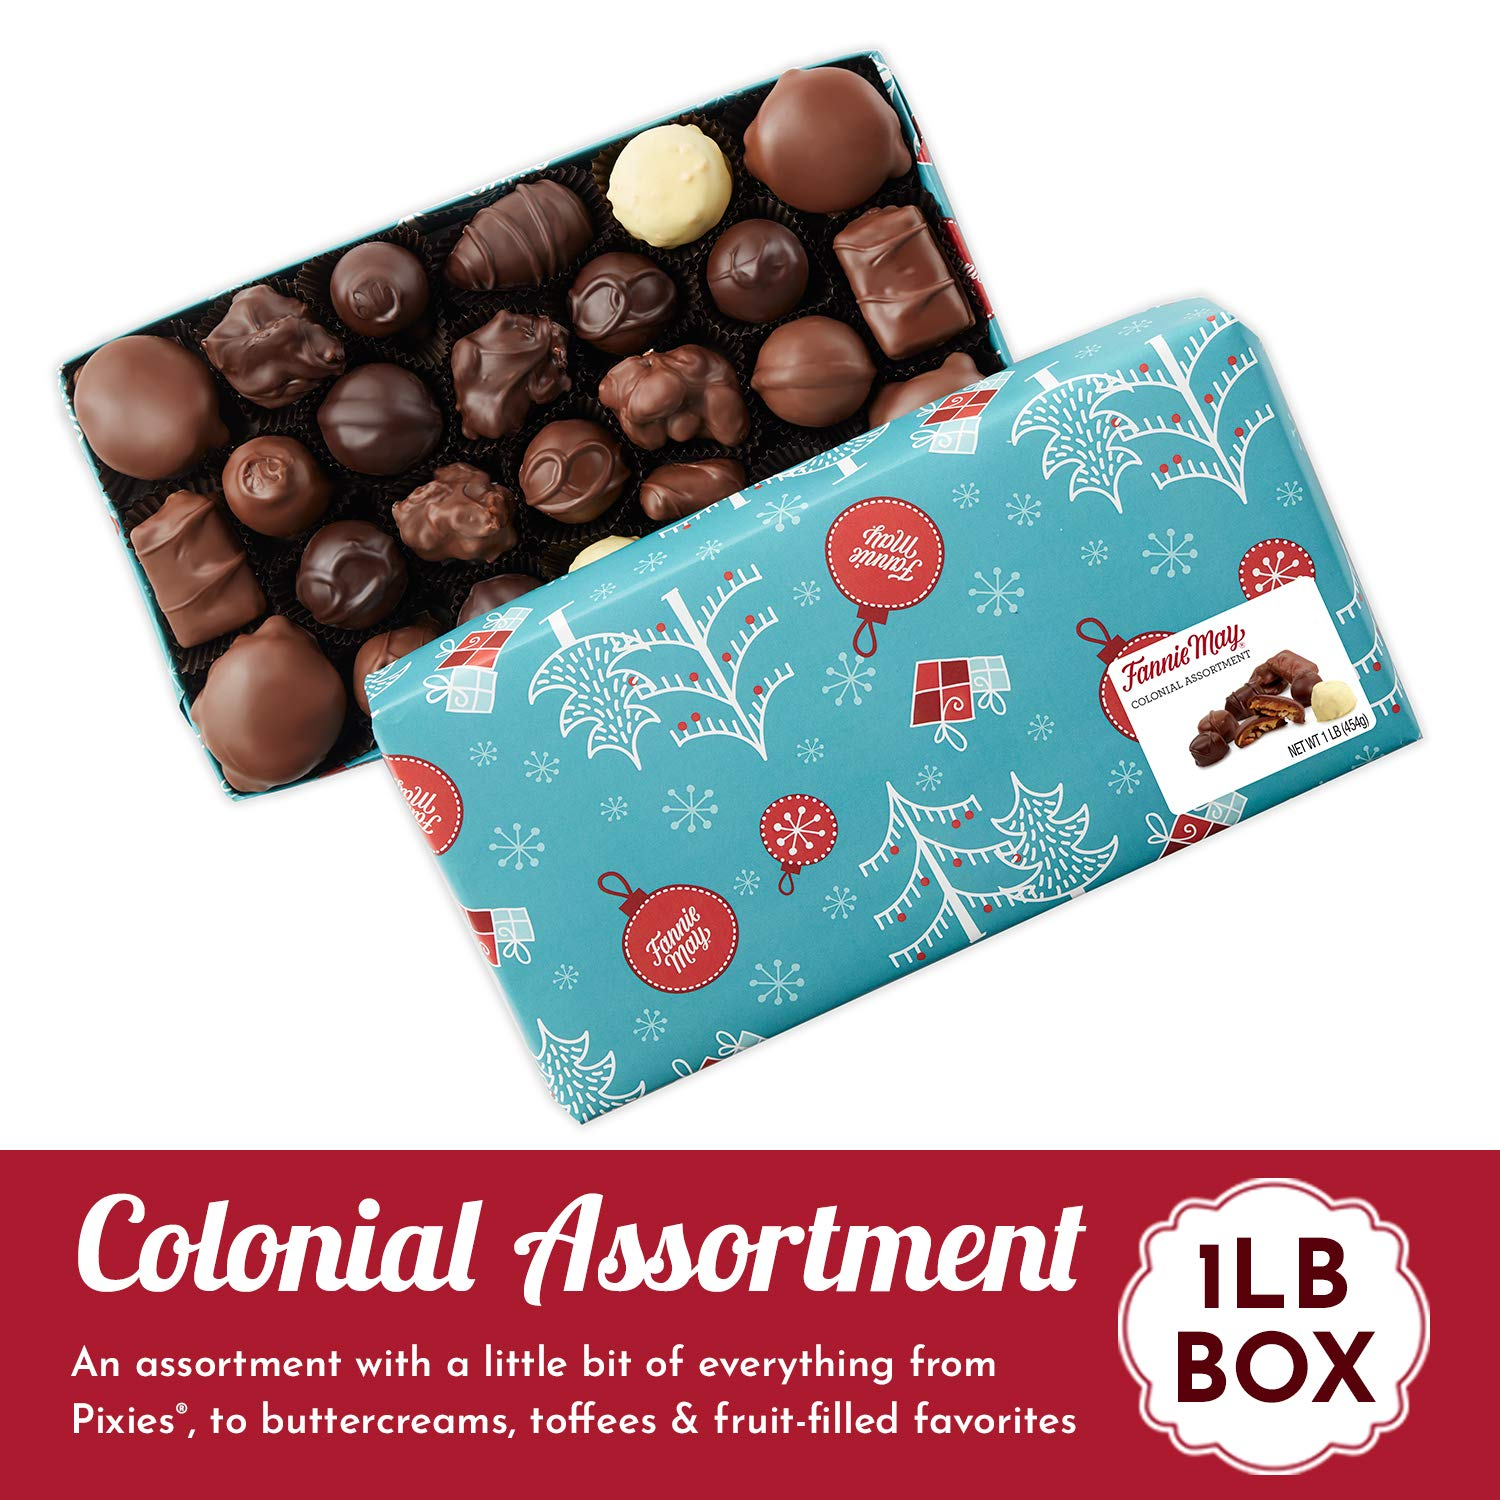 Fannie May Holiday Wrap Colonial Chocolate Assortment, Christmas Candy Gift  Box, 1 Lb- Buy Online in China at Desertcart. ProductId : 164433859.